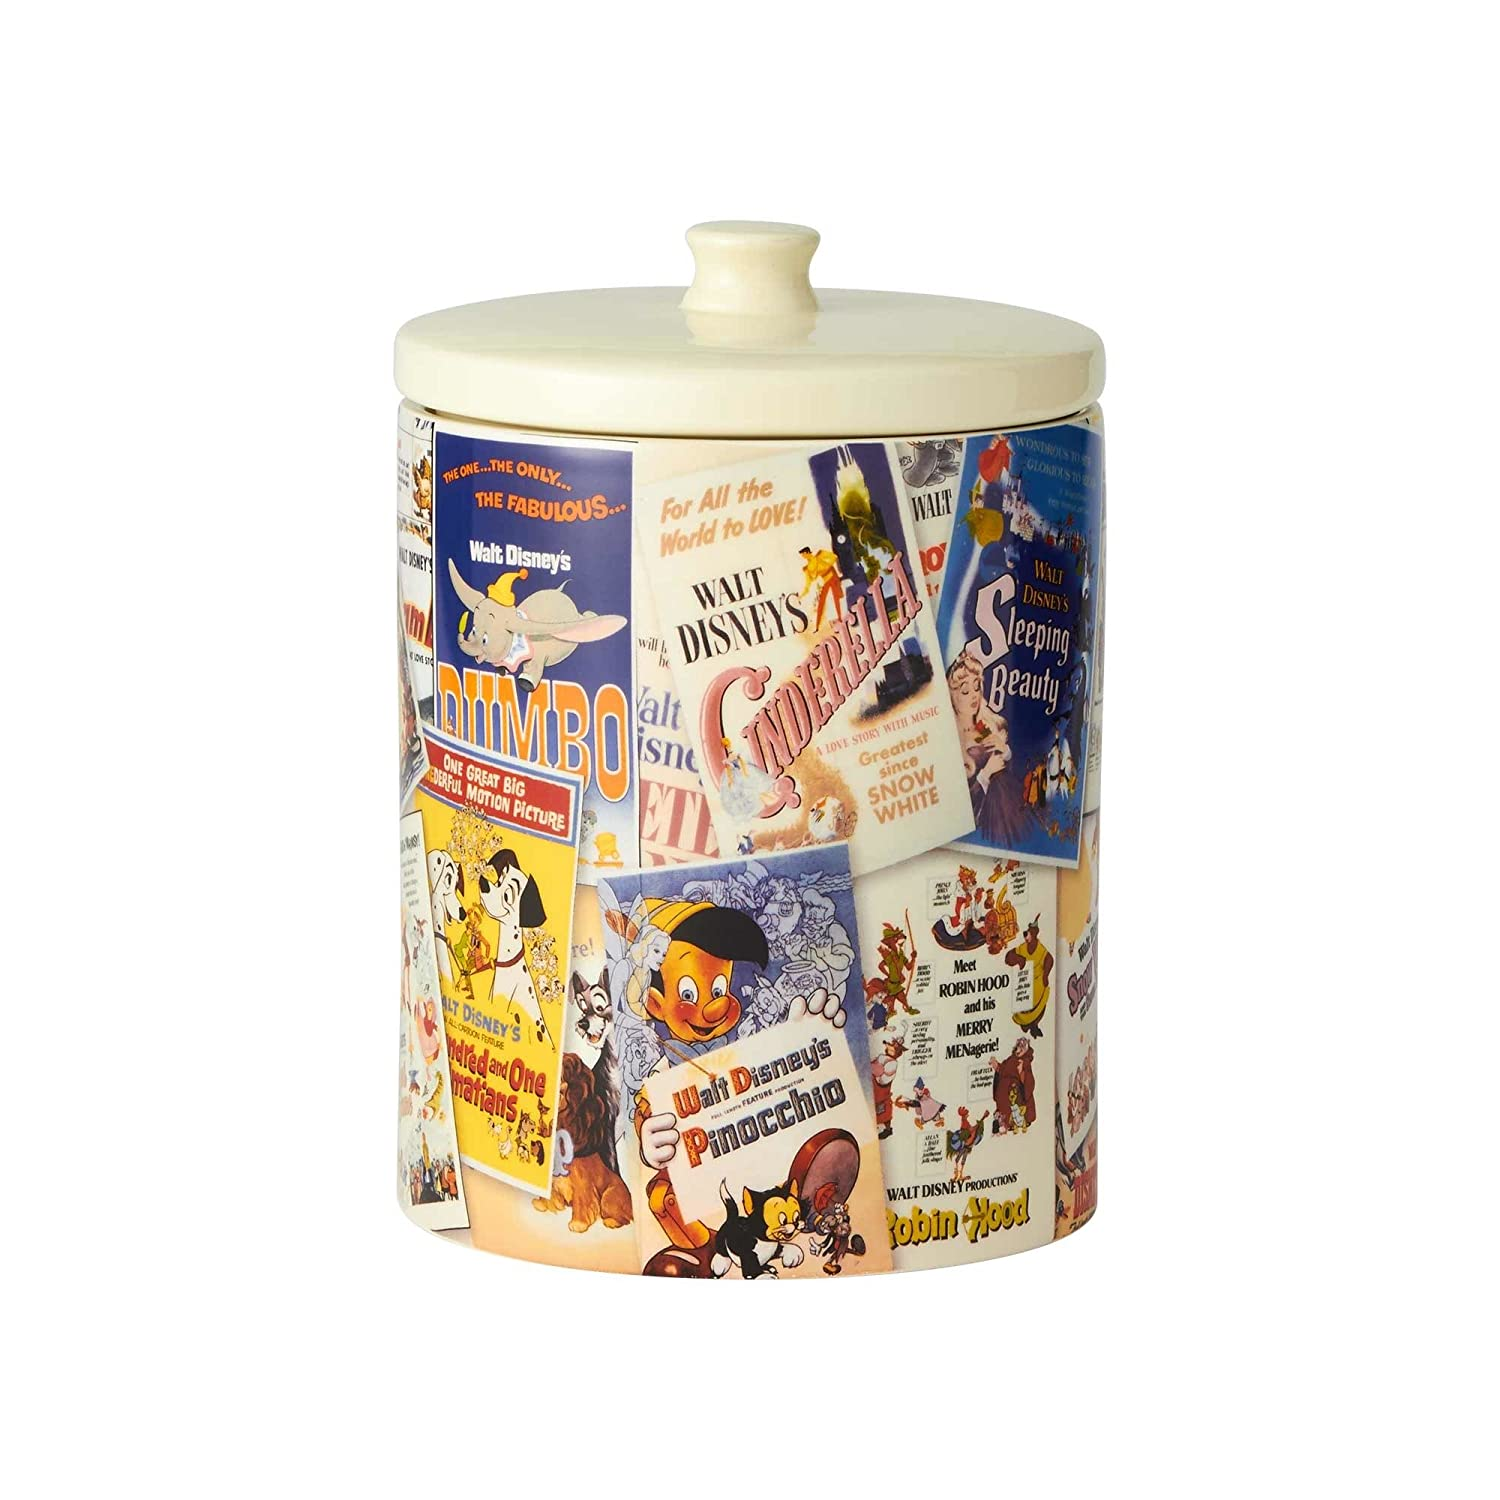 Enesco 6001023 Ceramics Classic Disney Film Posters Cookie Jar Canister, 9.25 Inch, Multicolor